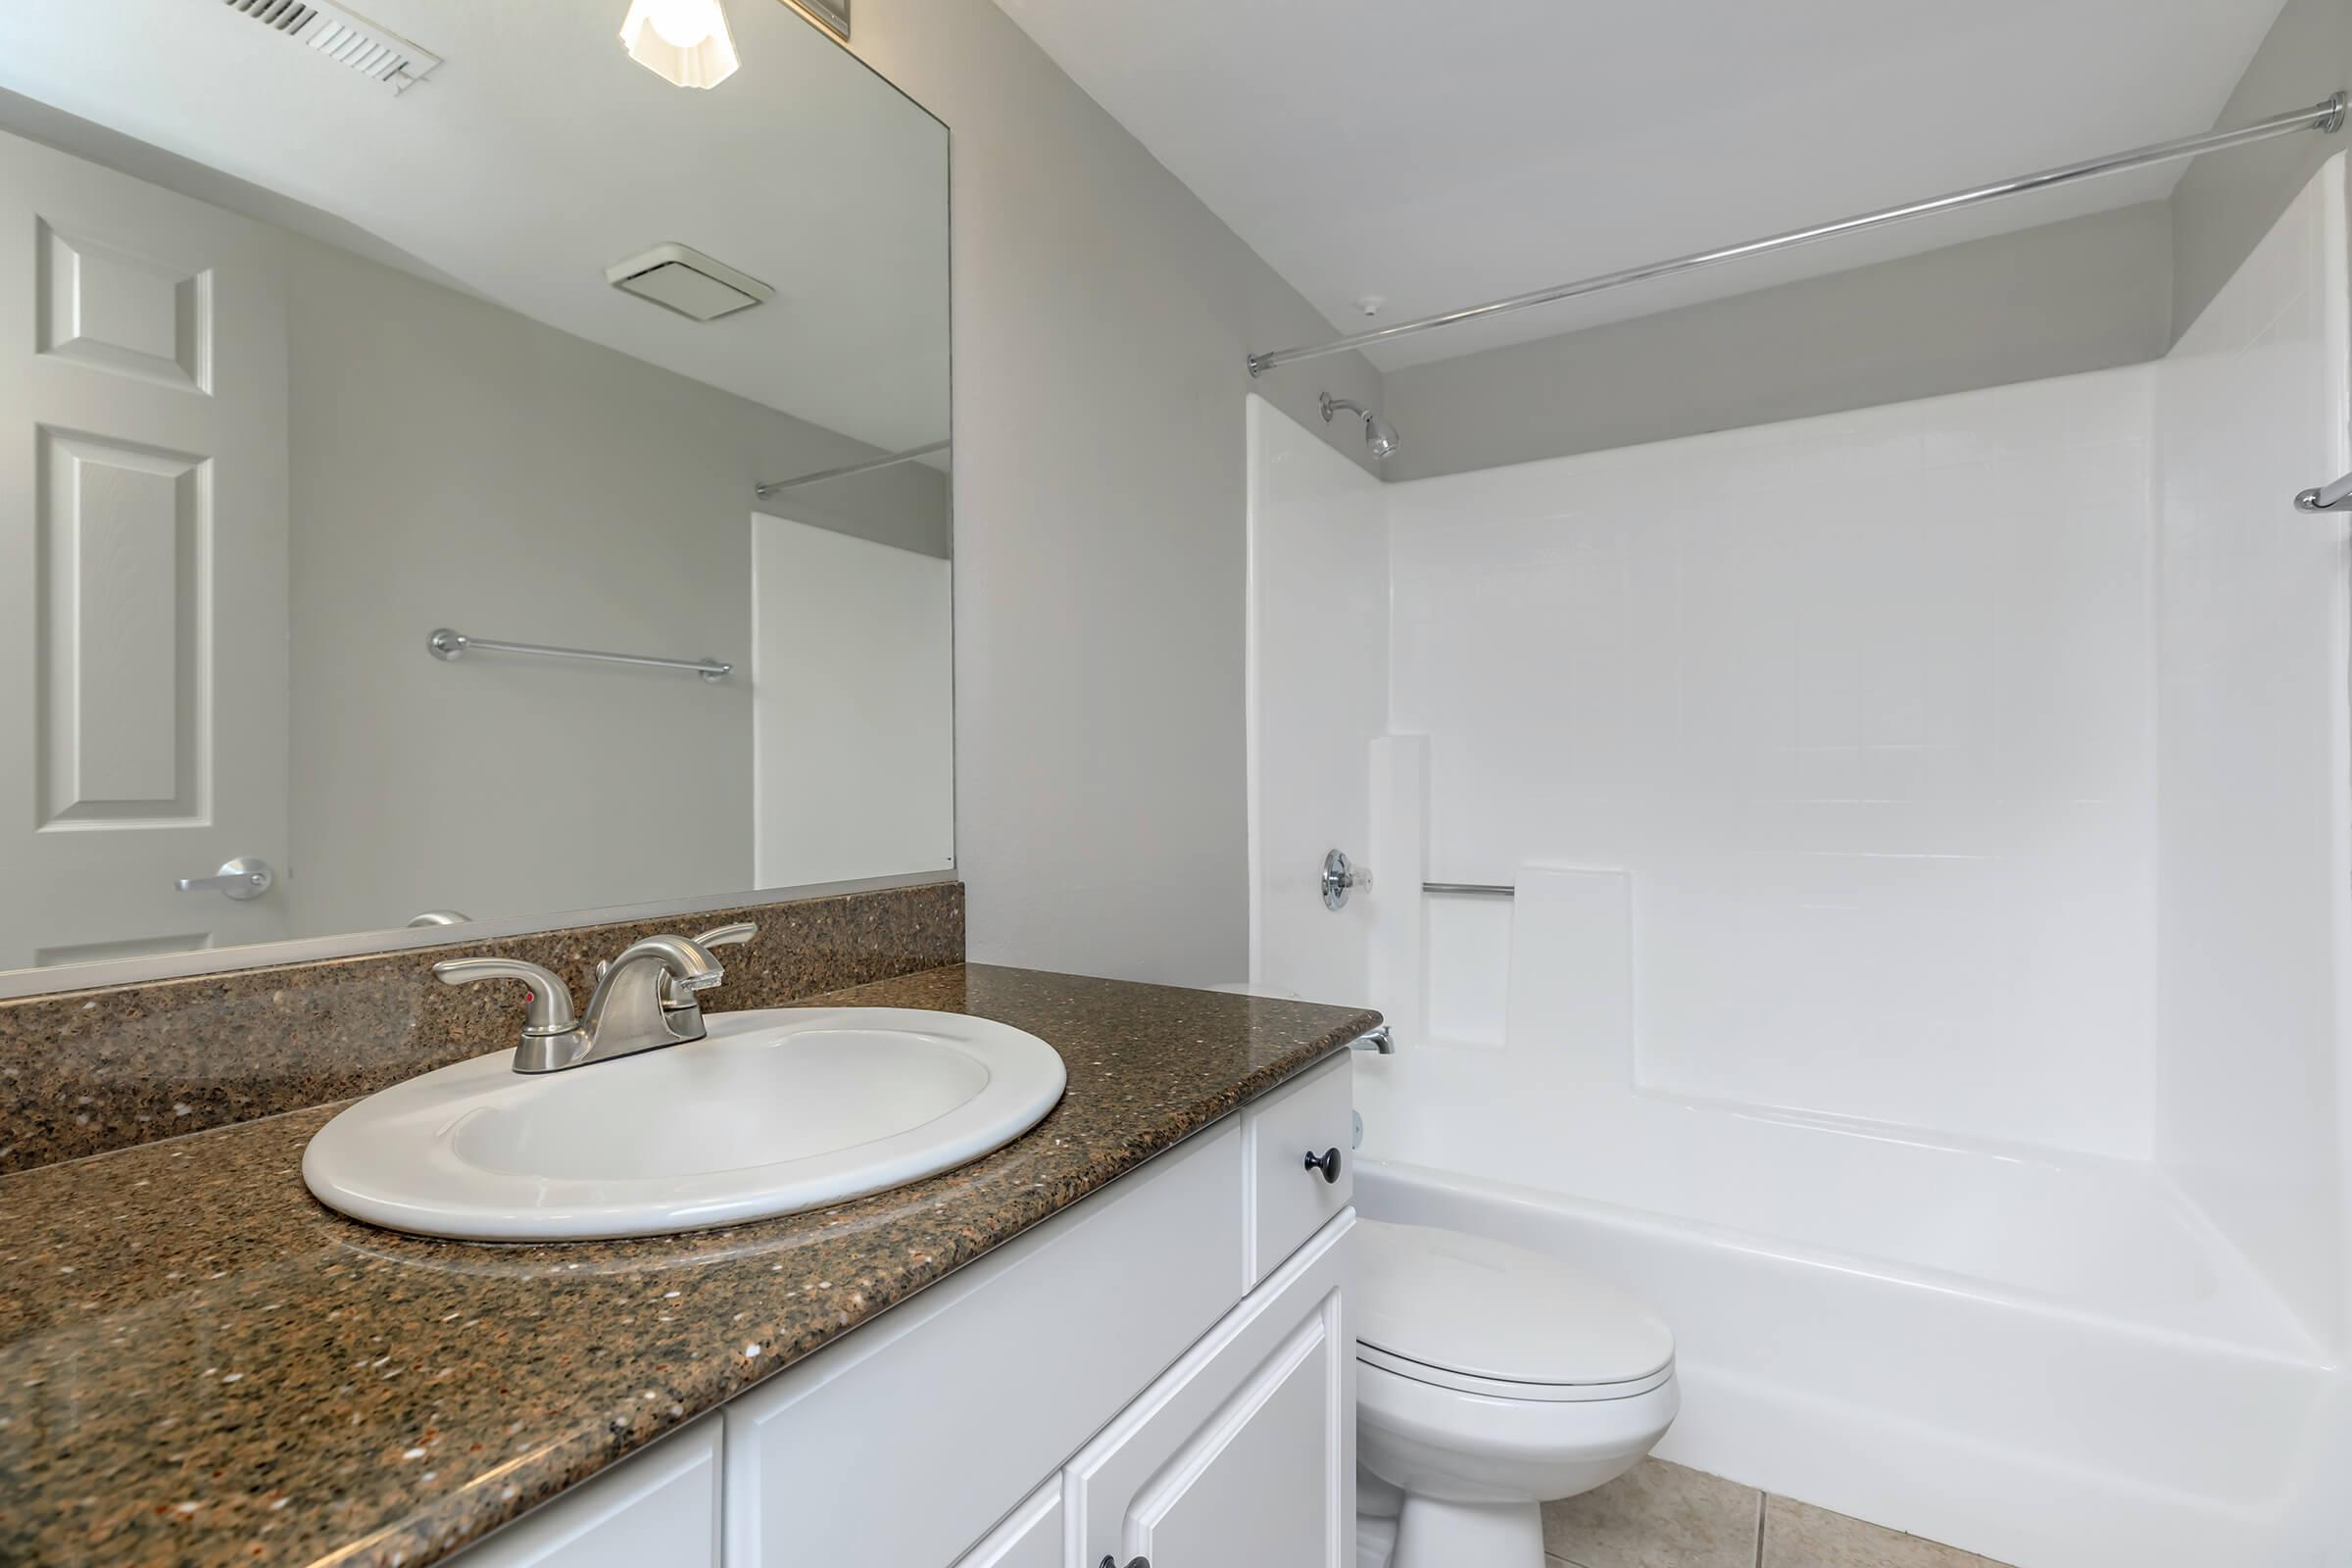 Bathroom with brown countertops